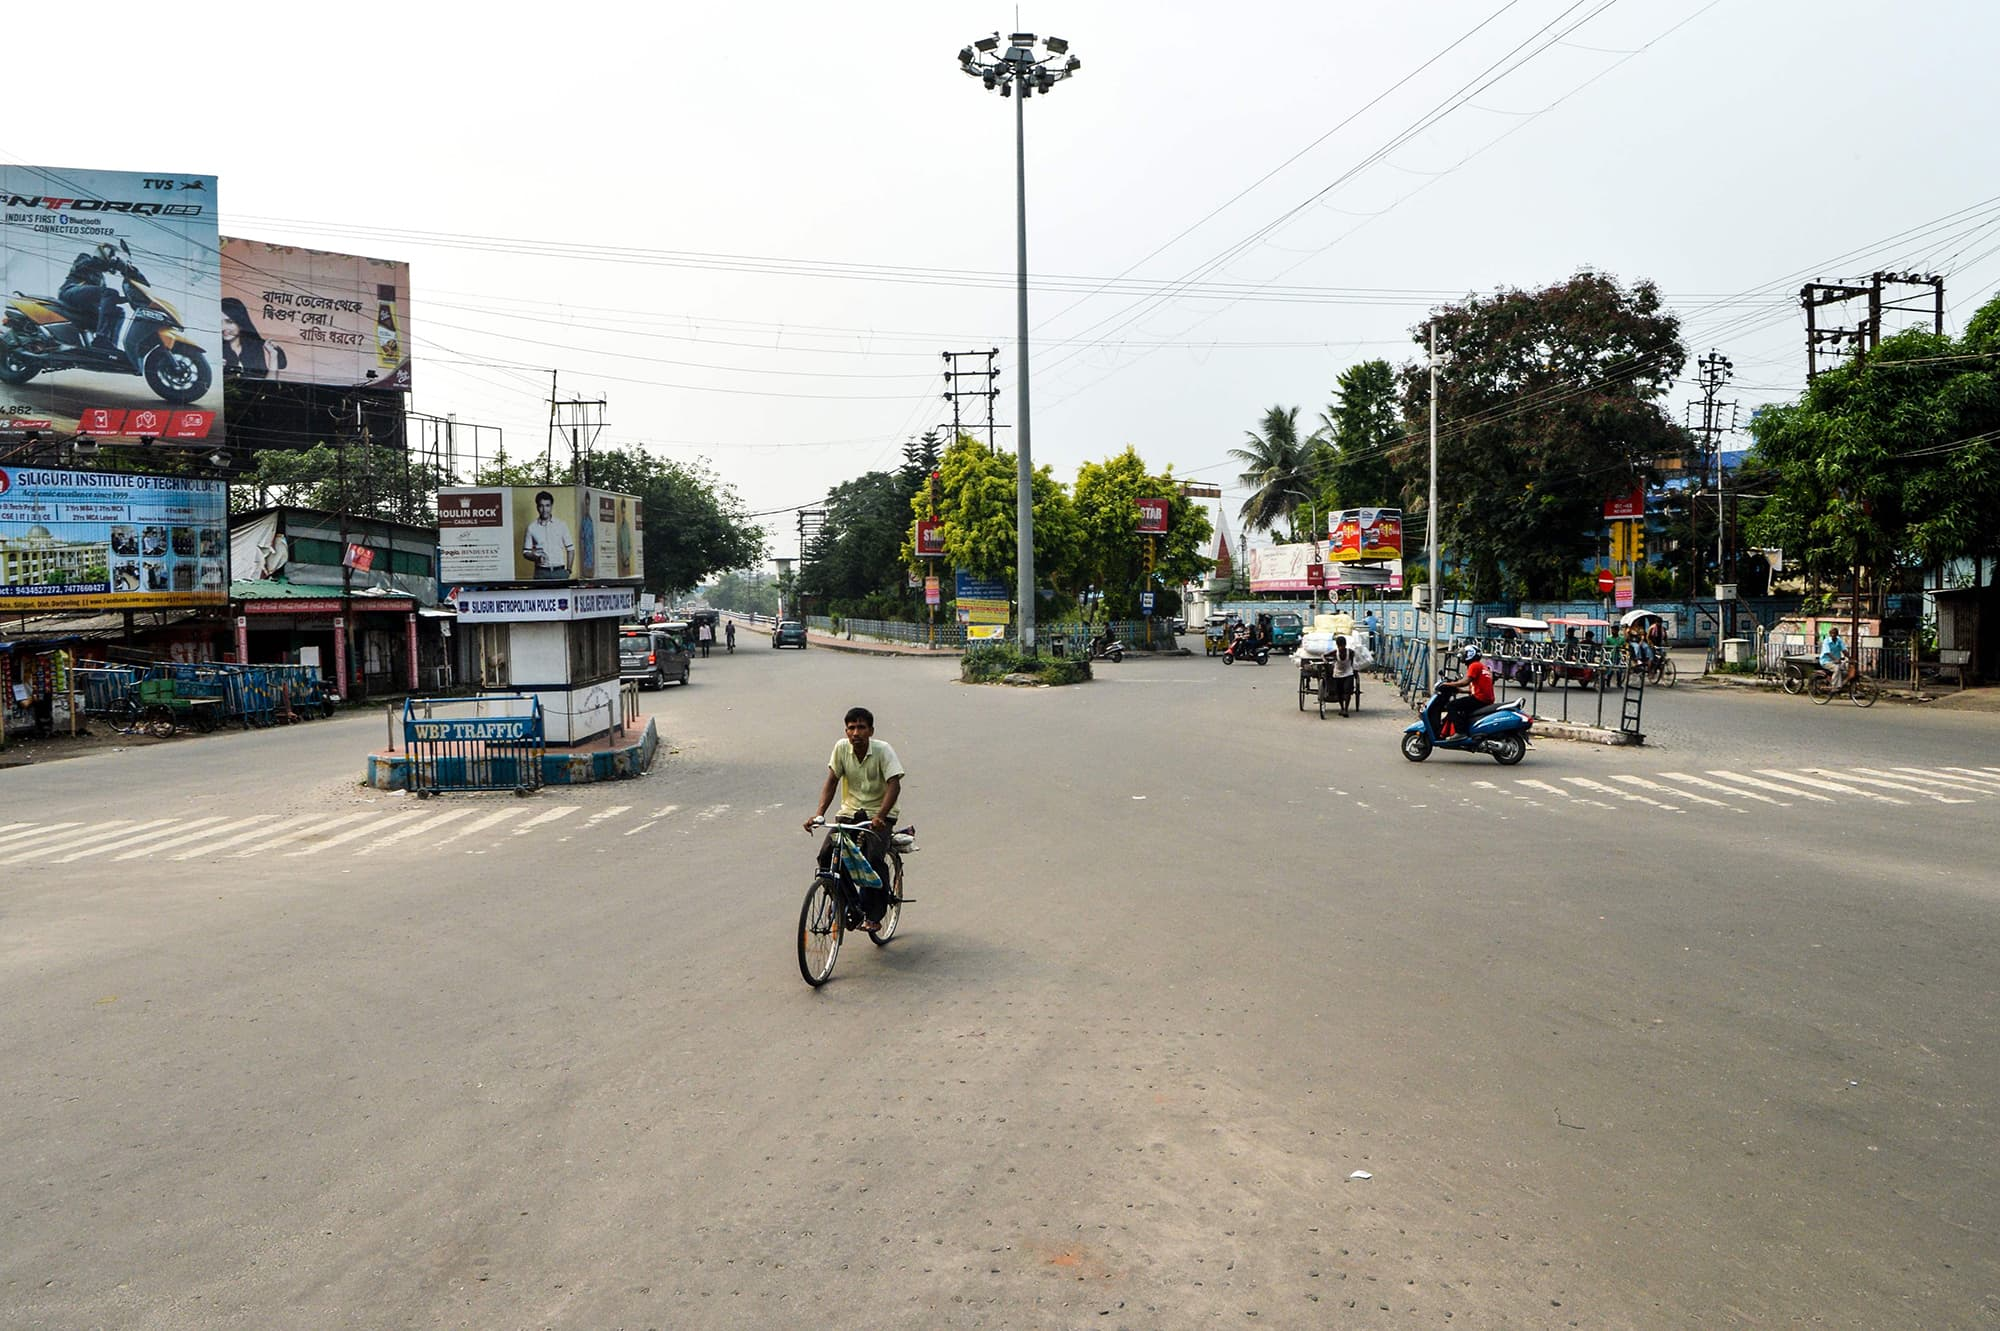 An Indian cyclist pictured on what is usually one of the busiest roads in Siliguri. The street appears deserted while the match is underway. ─ AFP